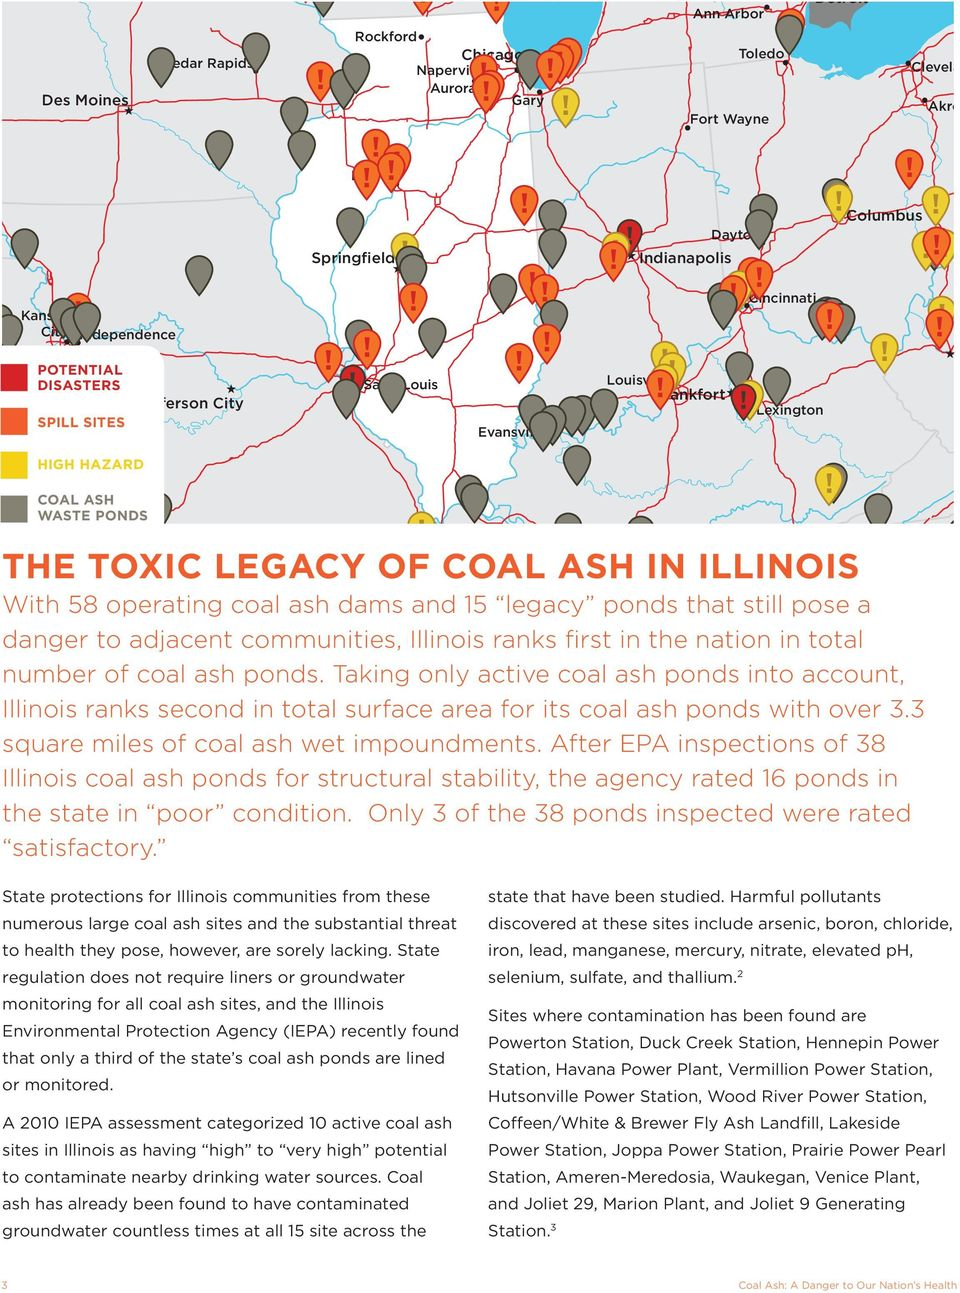 Akron Erie Pittsbur Charles lsa nd s HIGH HAZARD Coal Springfield ash waste ponds The Toxic Legacy of Coal Ash in ILLINOIS Knoxville With 58 operating coal ash dams and 15 legacy ponds Nashville that